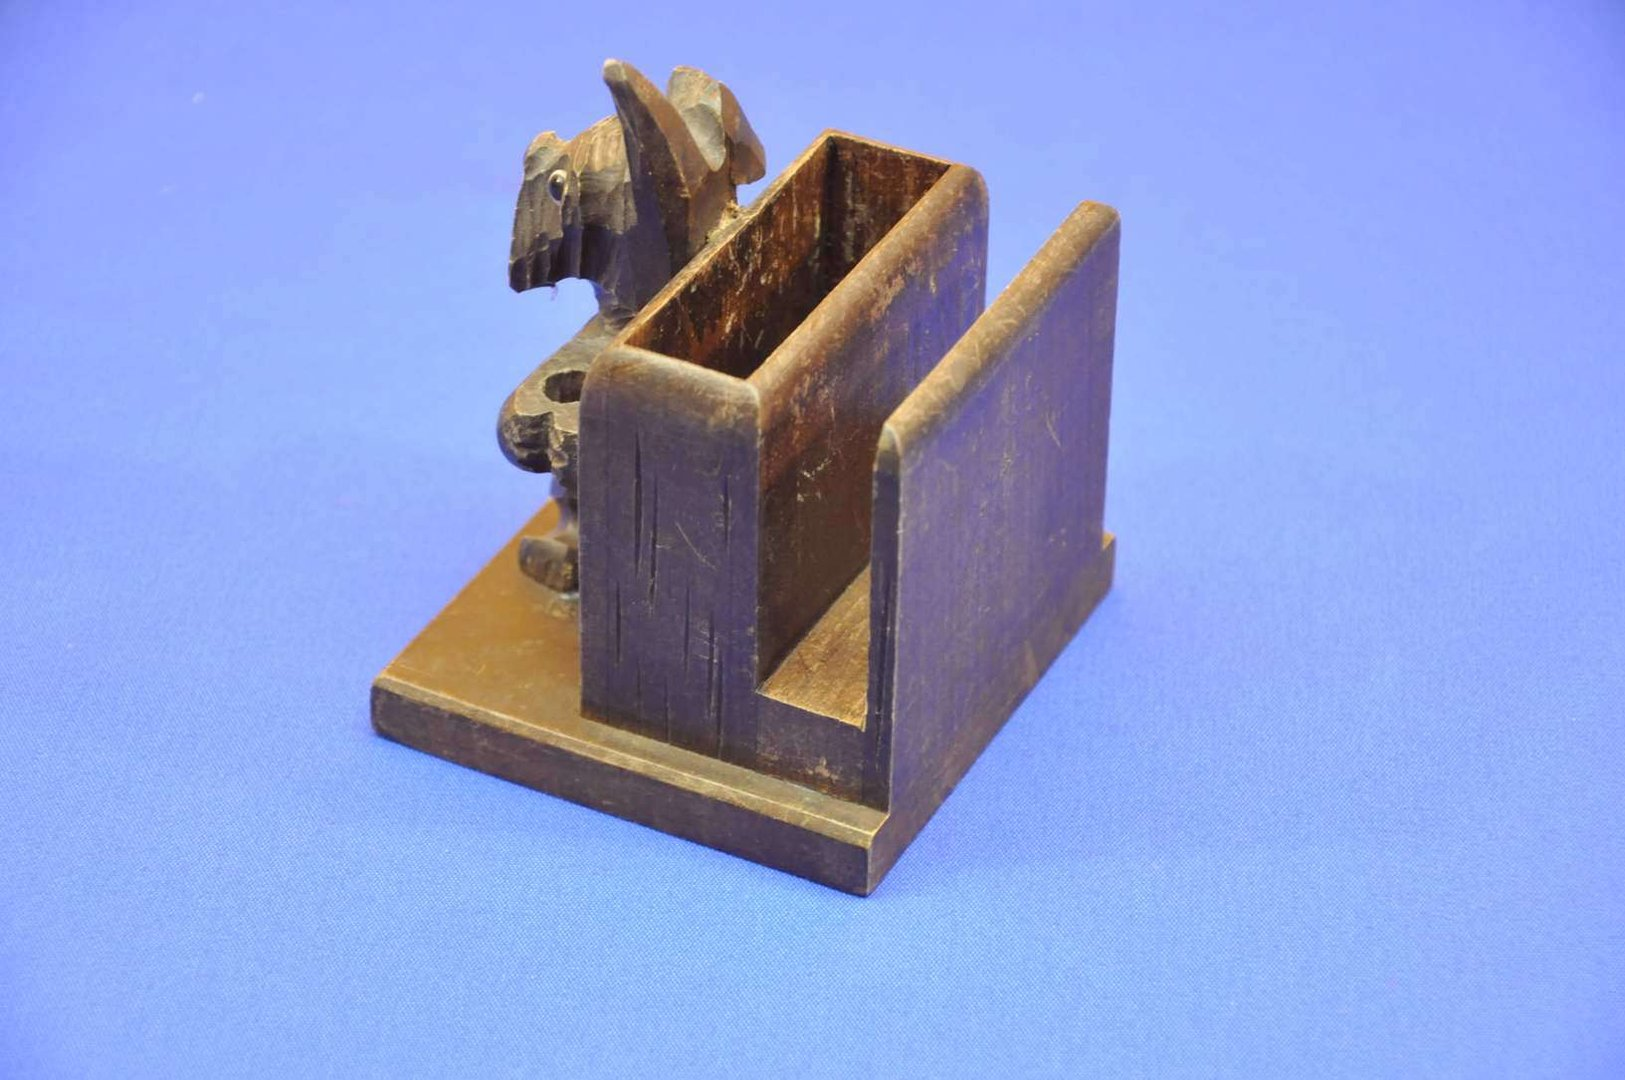 Art Deco pen holder business card holder made of wood - KuSeRa